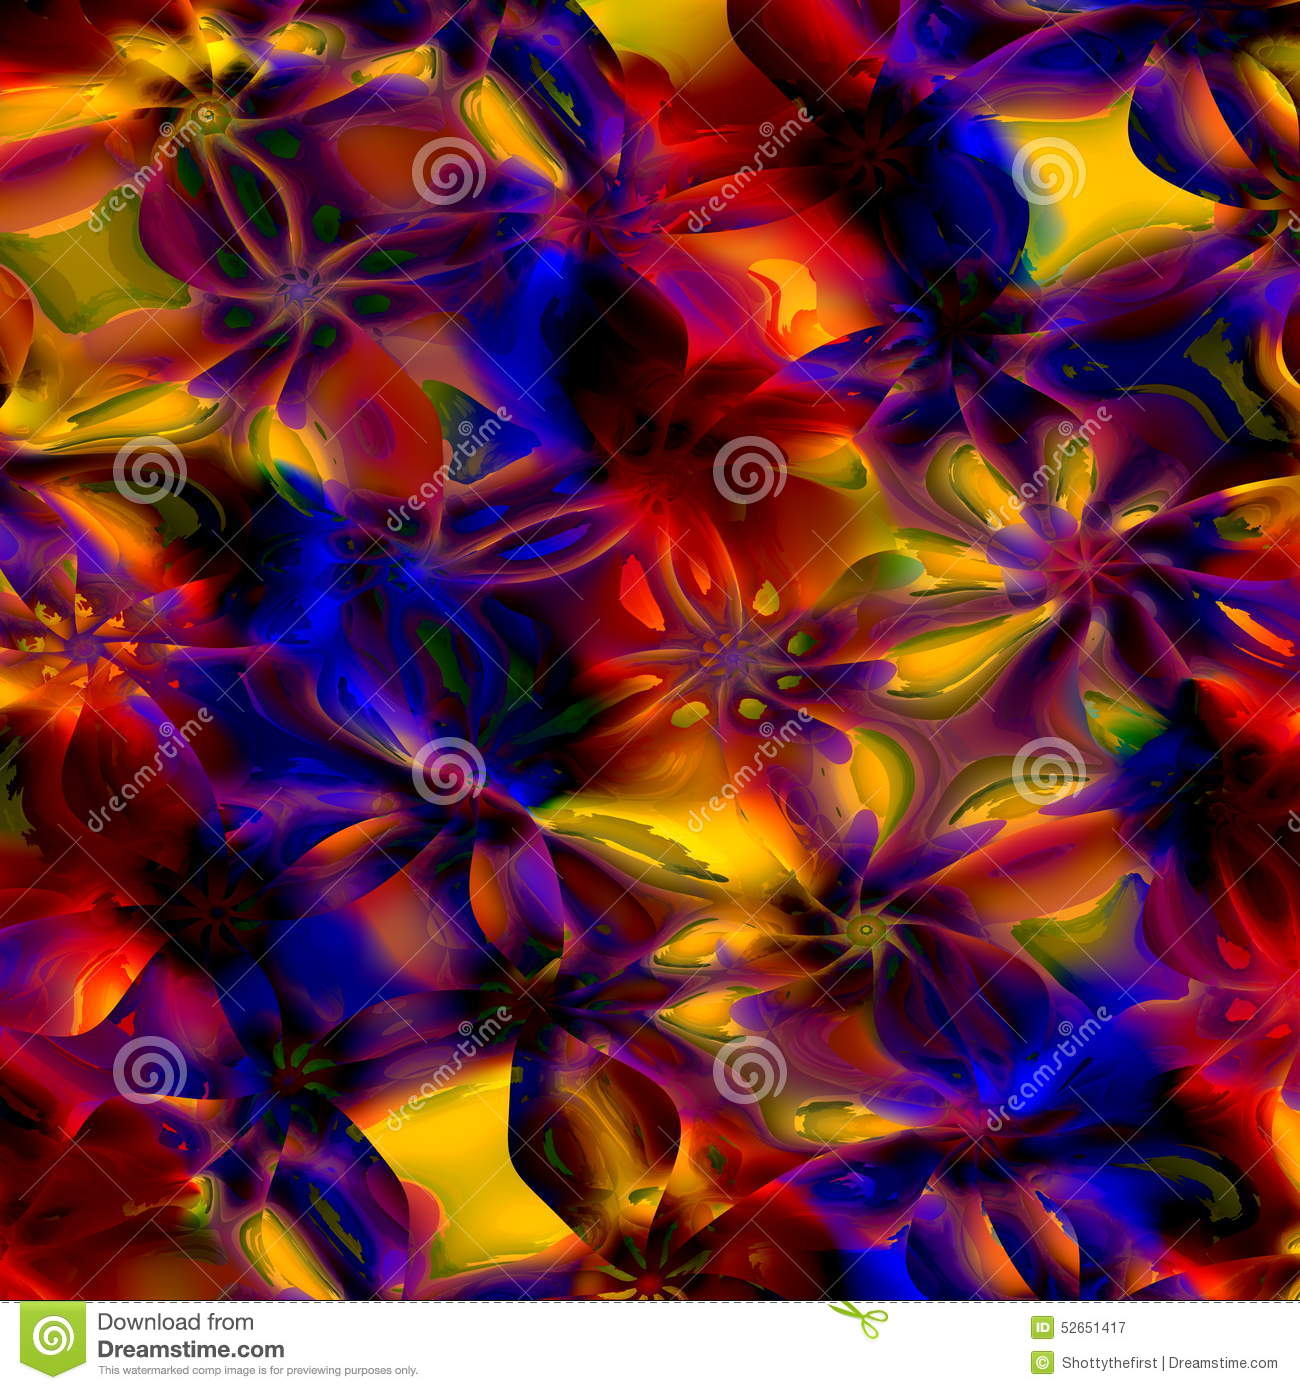 Colorful Abstract Art Background. Computer Generated Floral Fractal Pattern. Digital Design Illustration. Creative Colored Image.